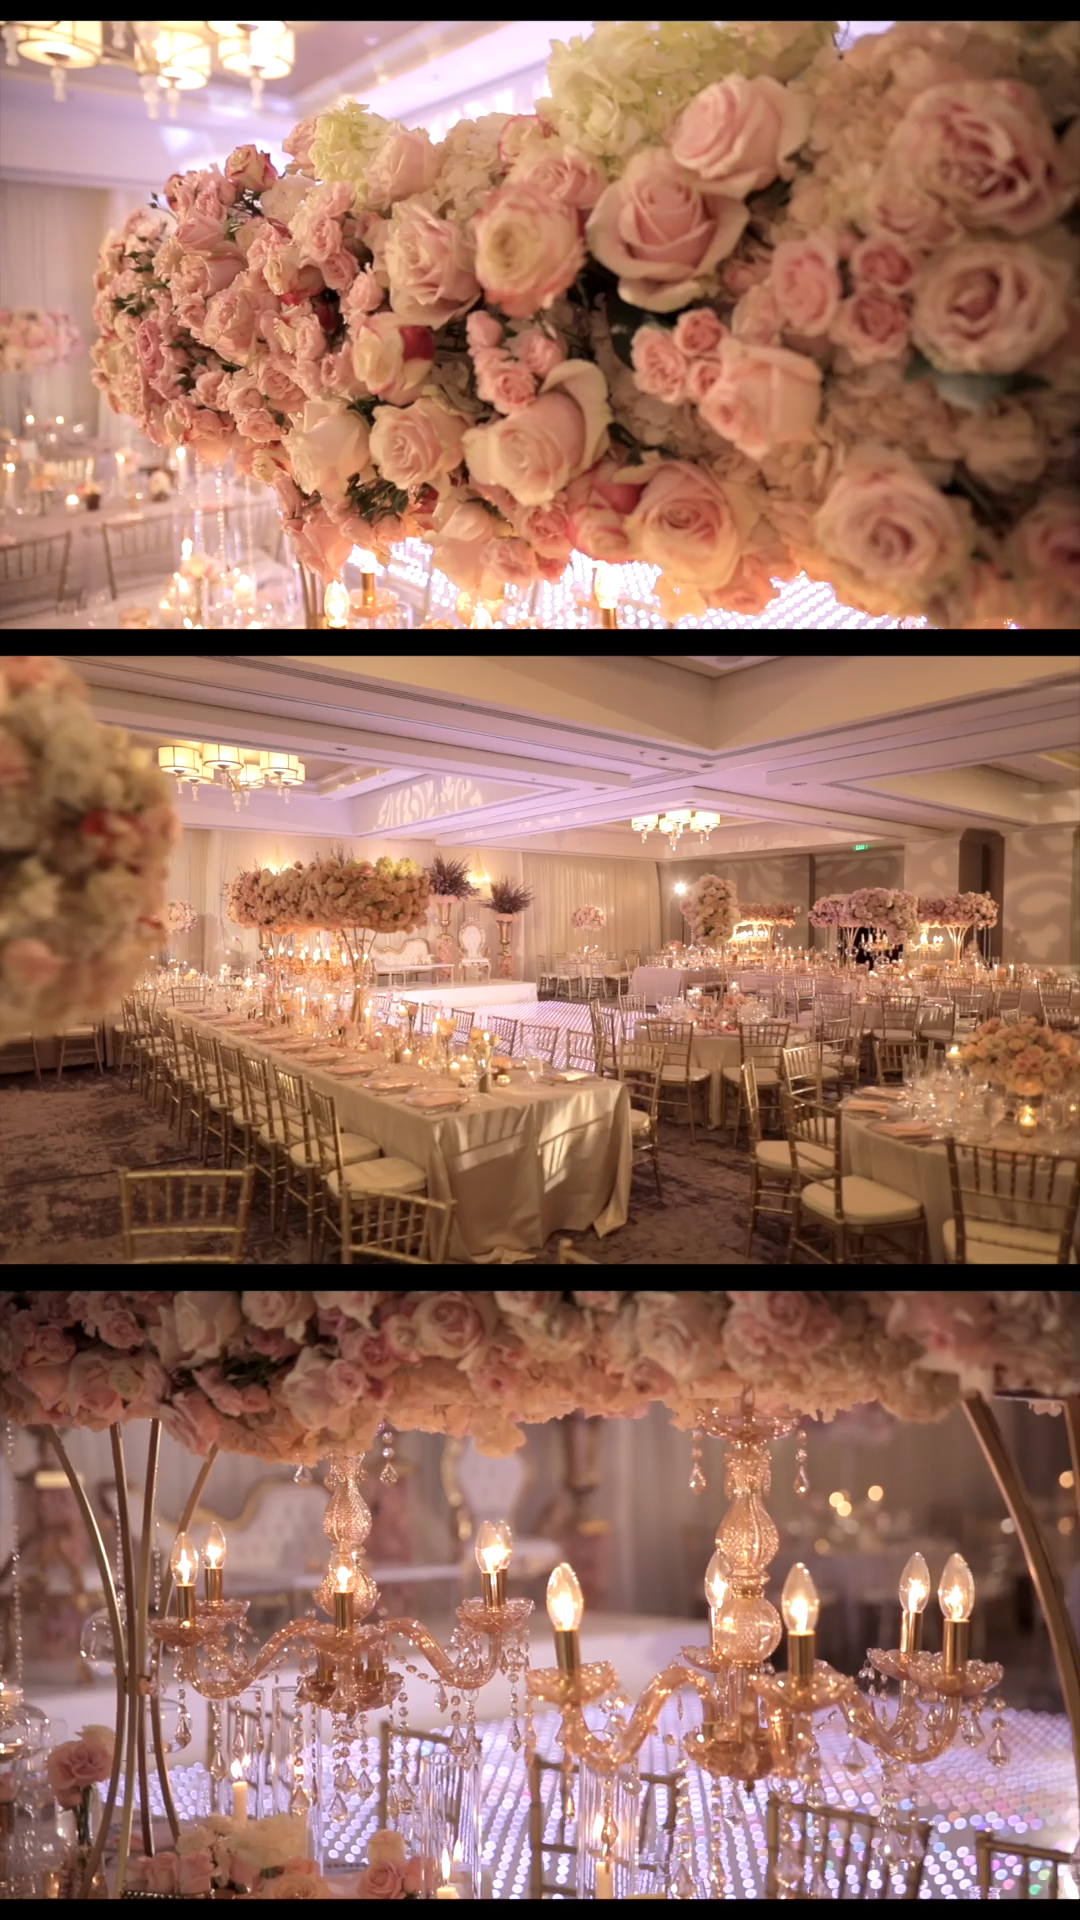 White and Soft Pink Reception Decorations - Reception Decor #weddingreception